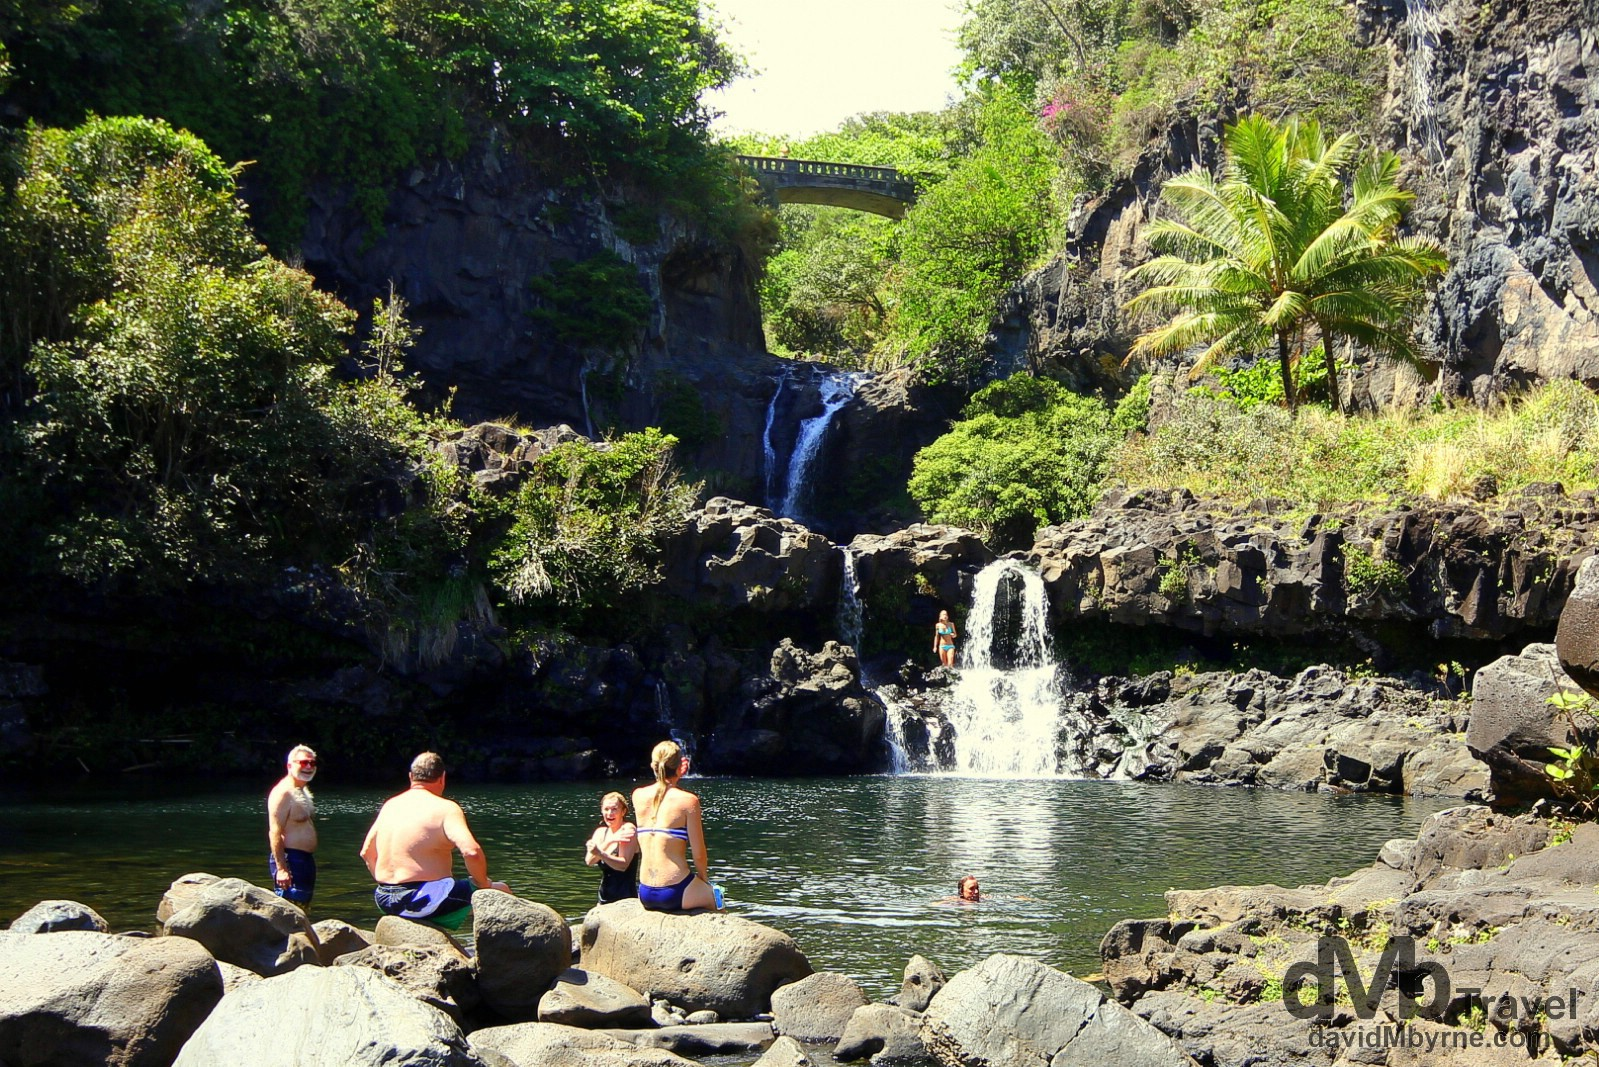 Swimming in the watering holes at Oheo Gulch in Haleakala National Park, near Kuloa Point, Maui, one of the more refreshing stops on Valley Isle Excursion's 'Road To Hana' tour. Maui, Hawaii, USA. March 7th 2103.